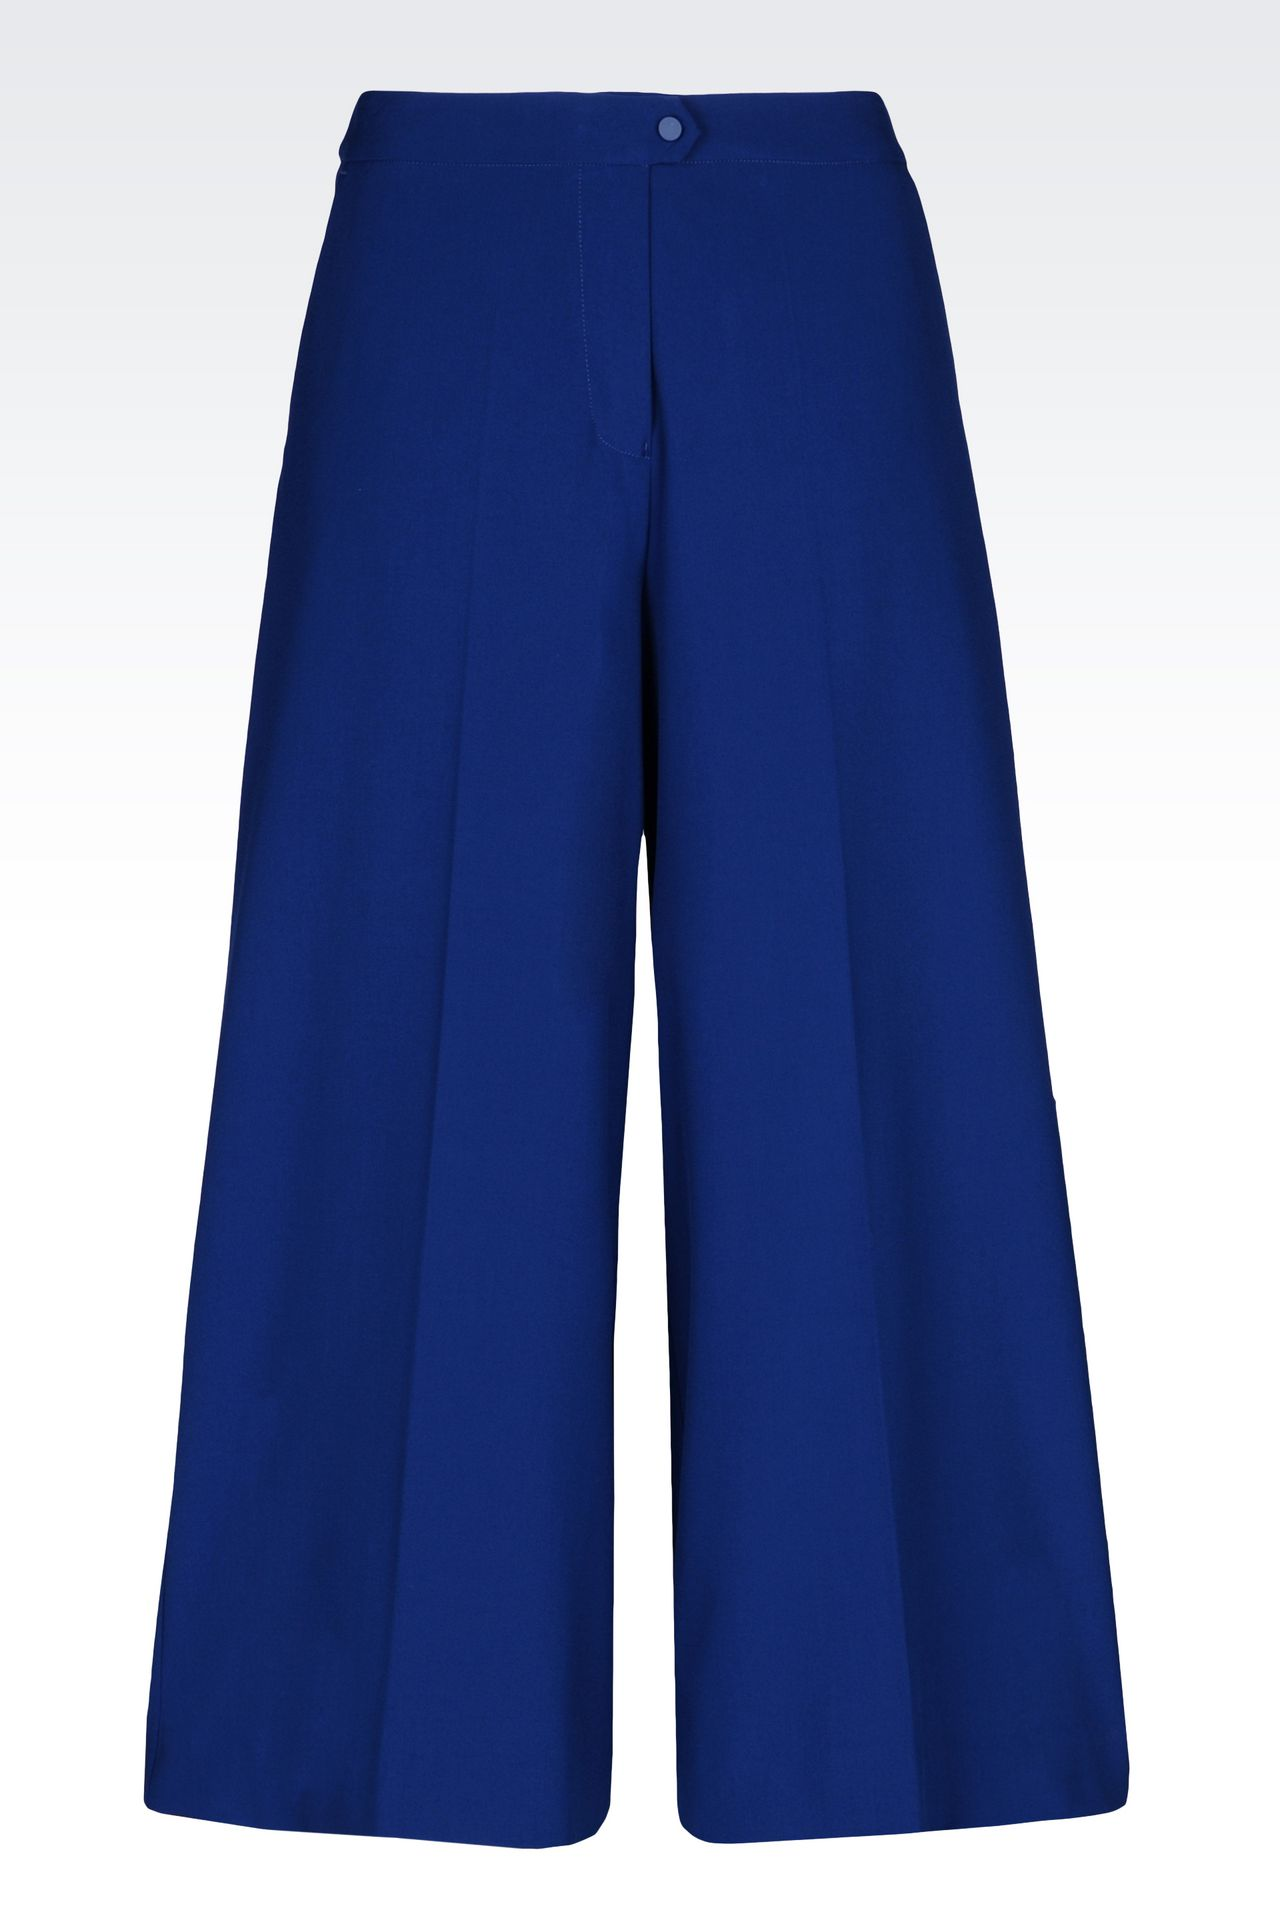 VISCOSE BLEND TROUSERS: High-waist pants Women by Armani - 0